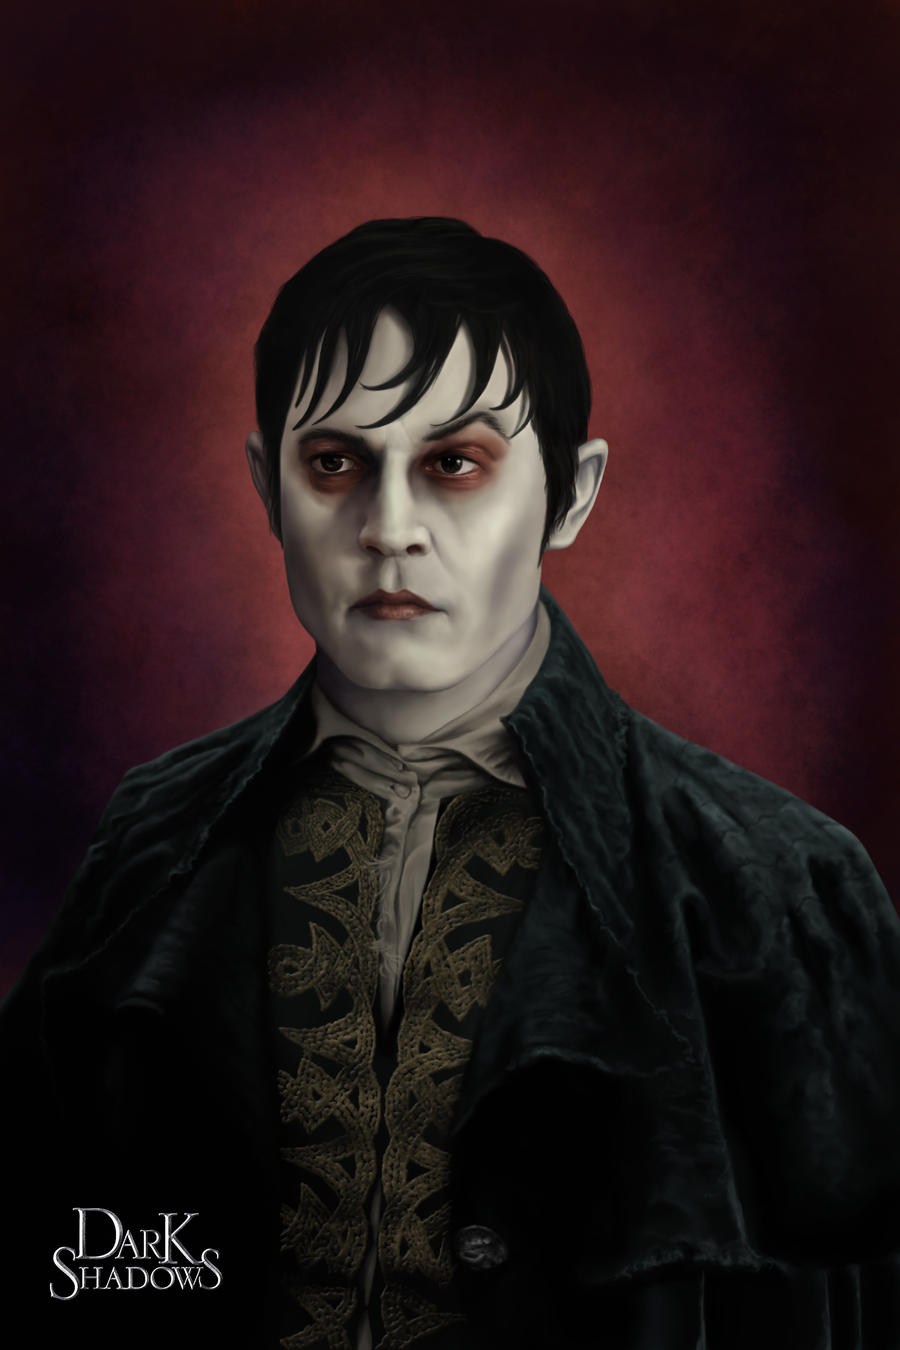 Barnabas Collins of Collinwood by JRSly